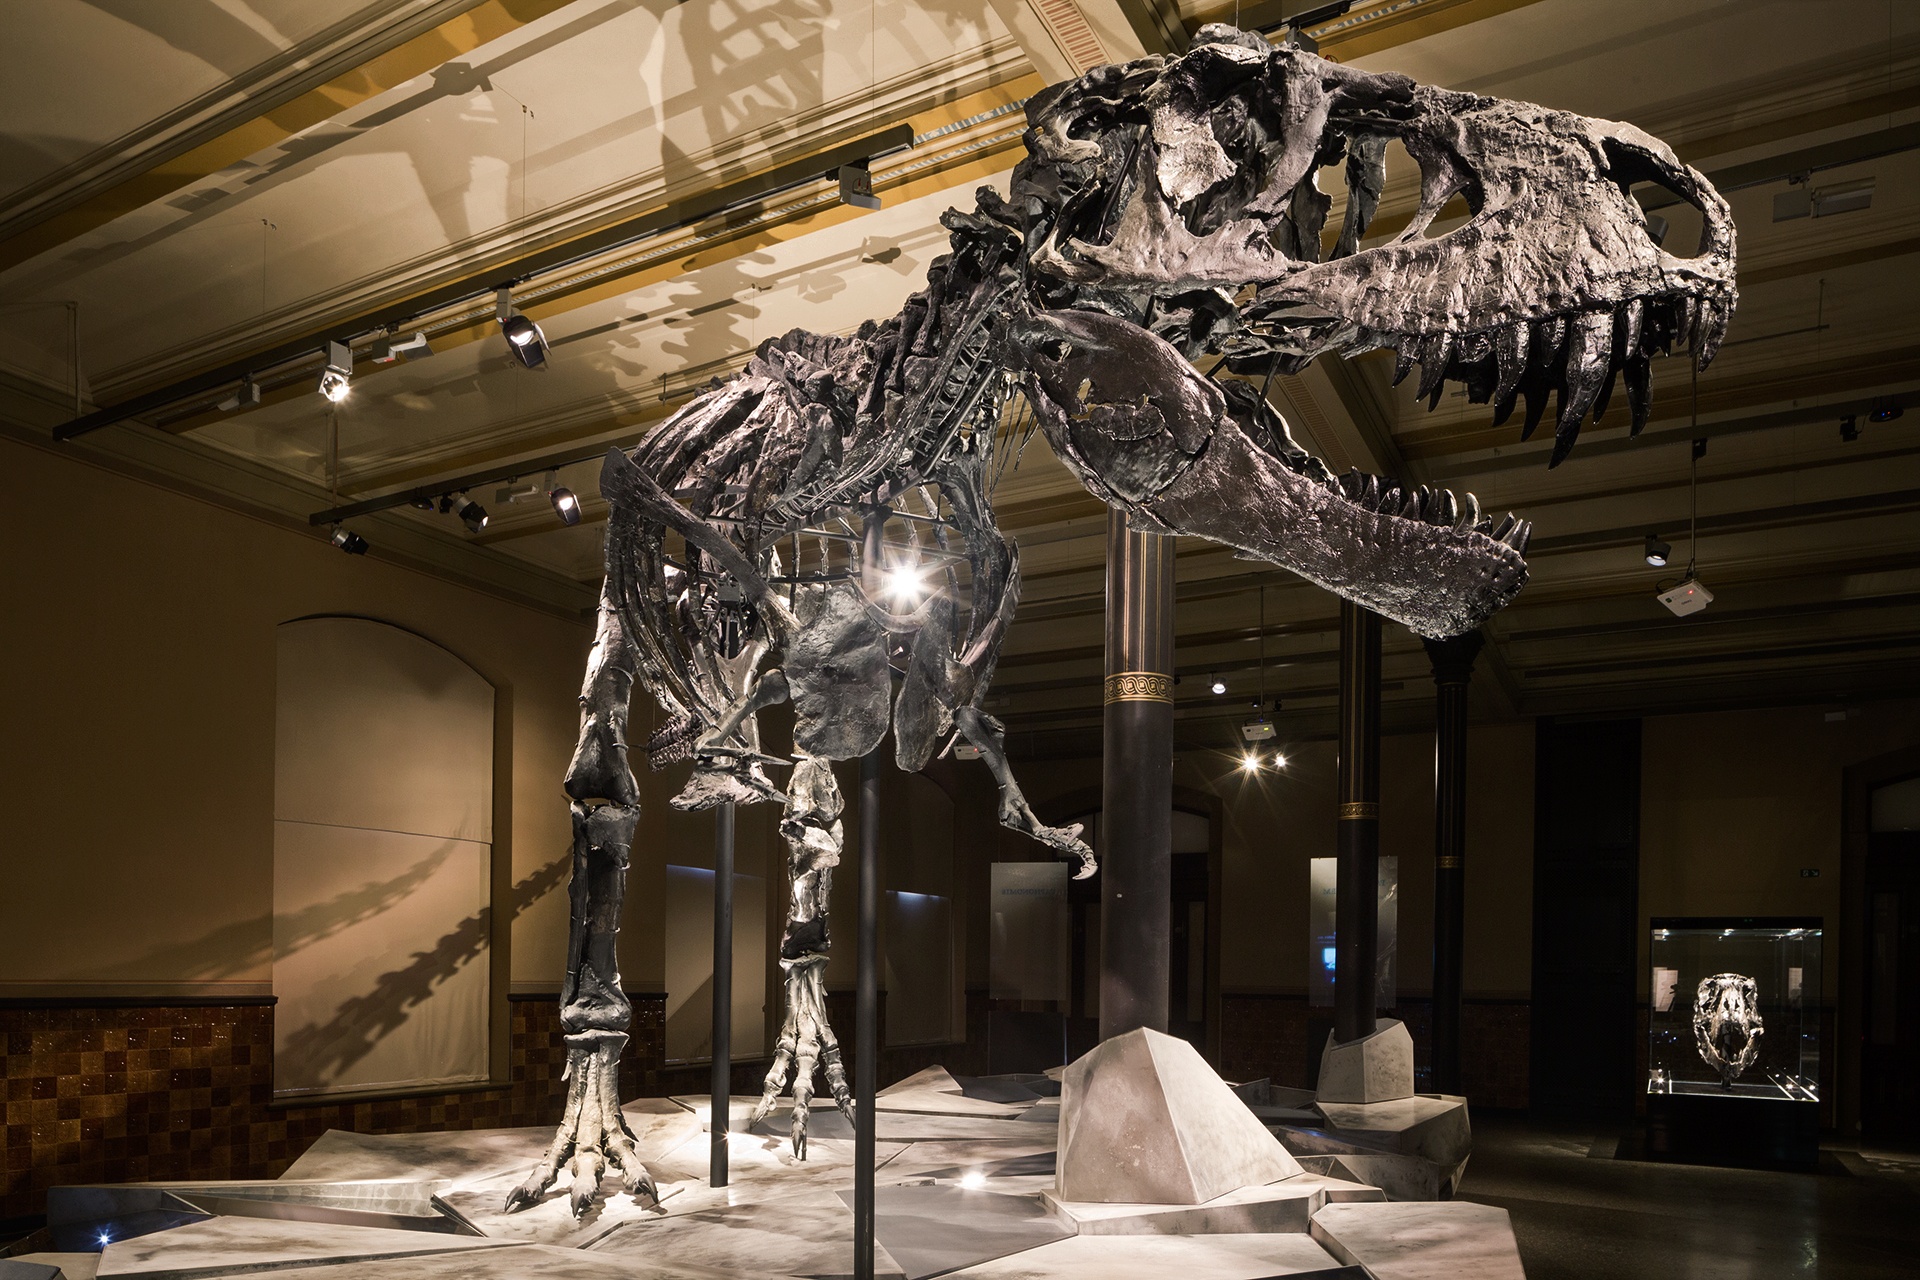 Tristan, the only complete T-Rex skeleton in Europe, has been displayed at Berlin's Natural History Museum since October 2015.  Berlin, Germany.